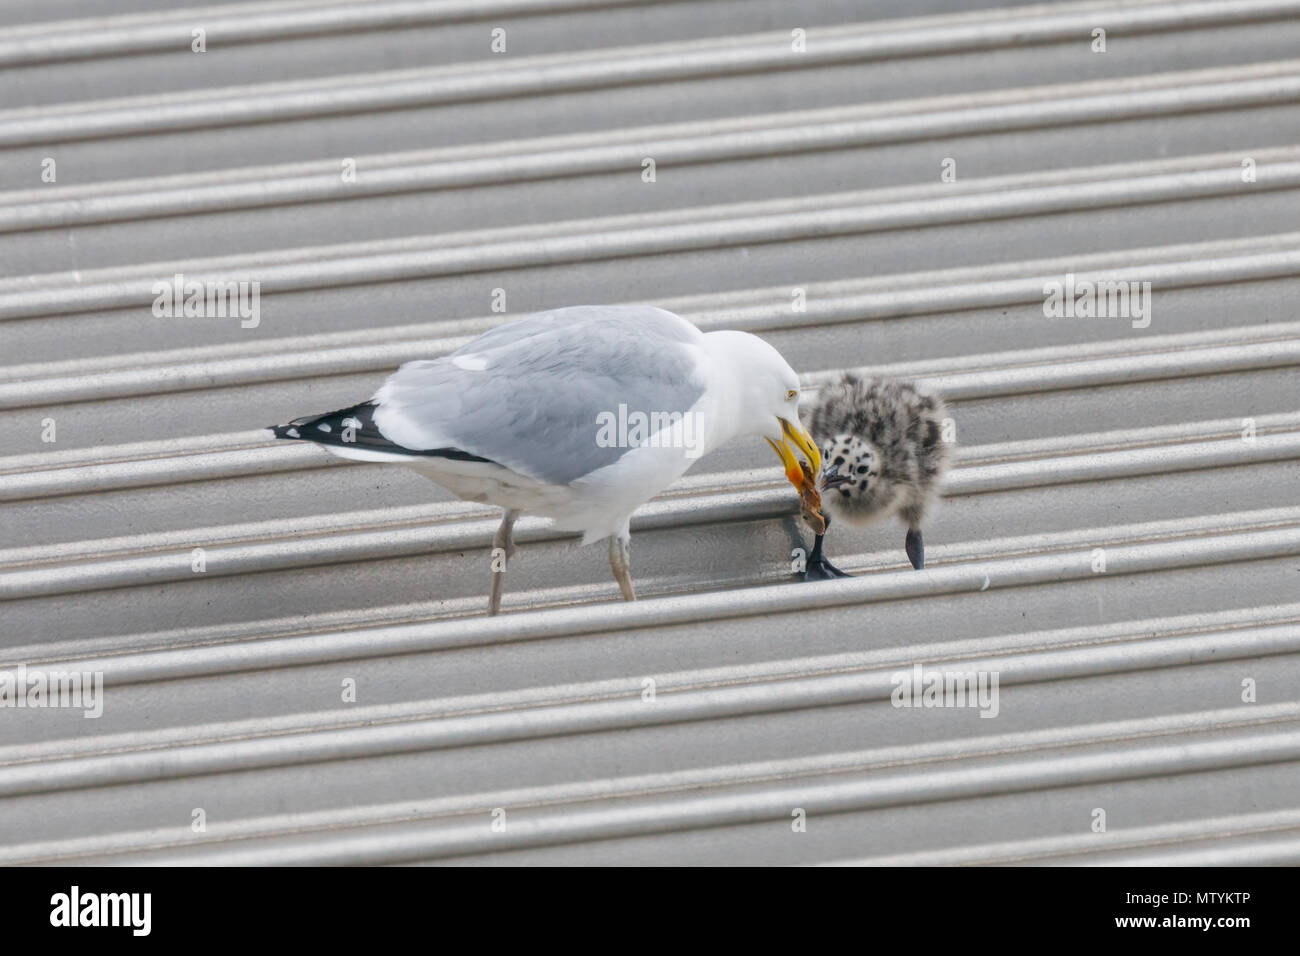 Forty Lane, Wembley Park, UK. 31st May 2018. Recently hatched Common Gull (Seagull) chicks on urban supermarket roof.   Credit: amanda rose/Alamy Live News - Stock Image